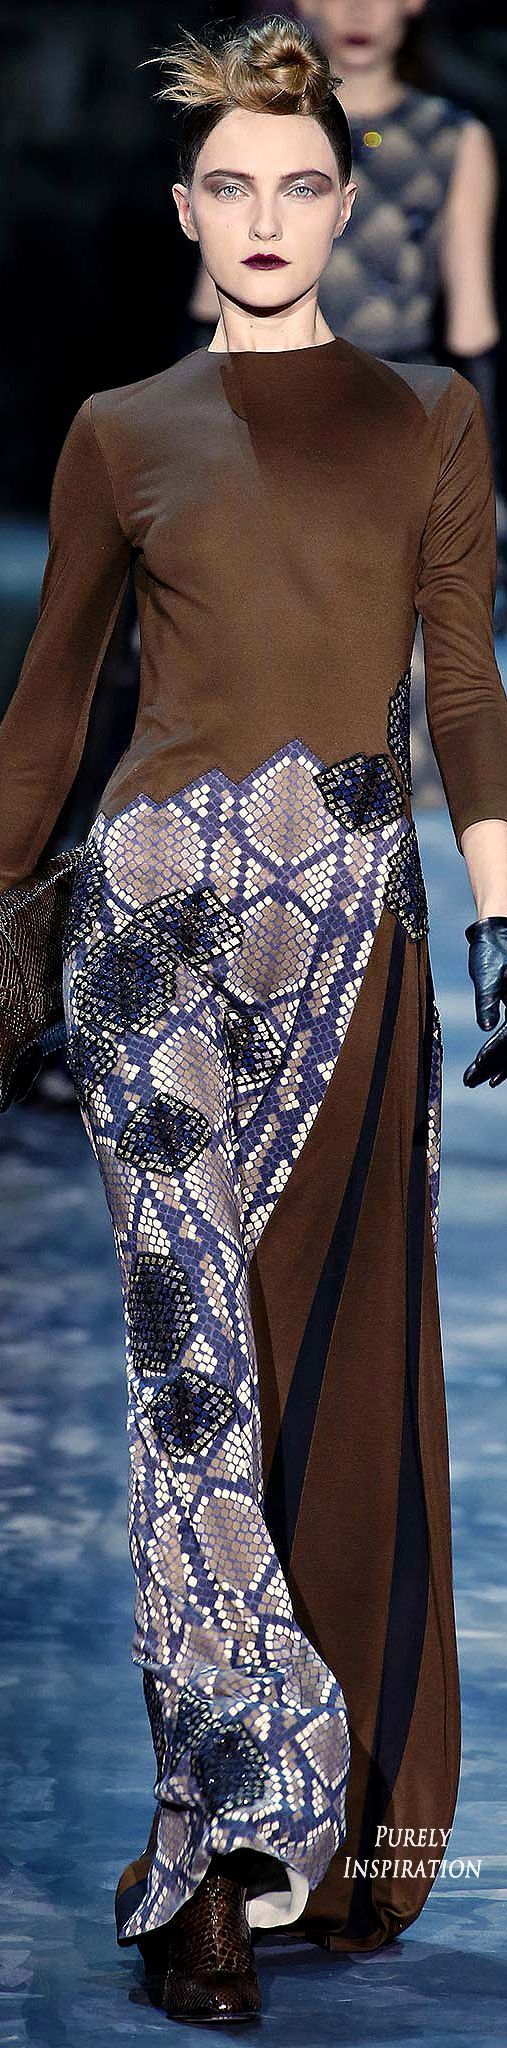 Marc Jacobs FW2015 Women's Fashion RTW | Purely Inspiration